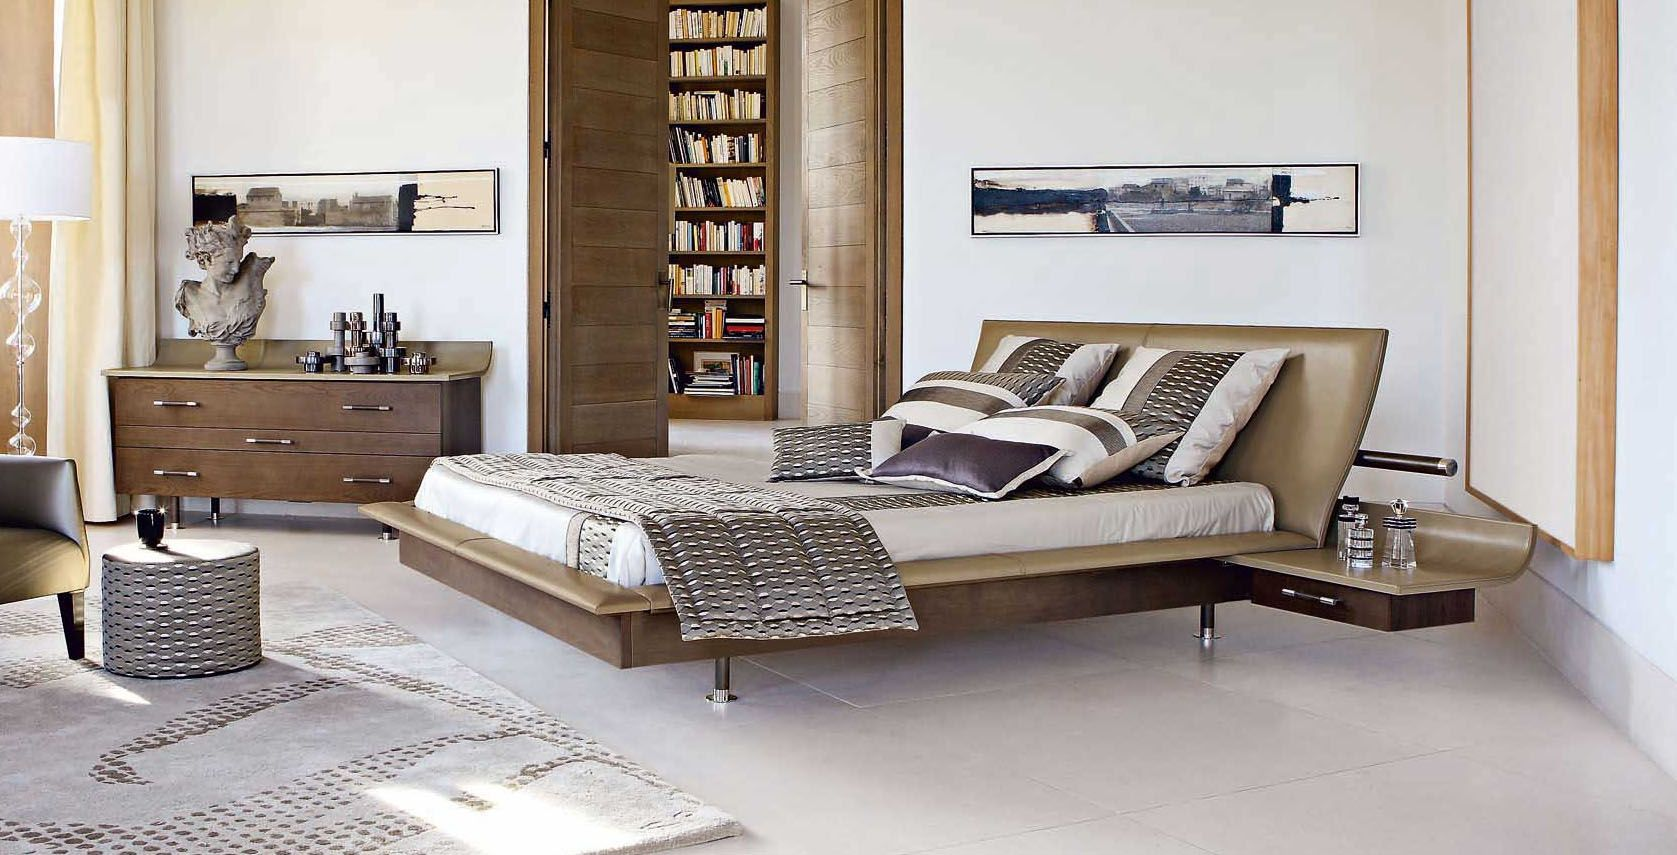 roche bobois beds - Google Search | DBMB | Pinterest | Bedrooms ...